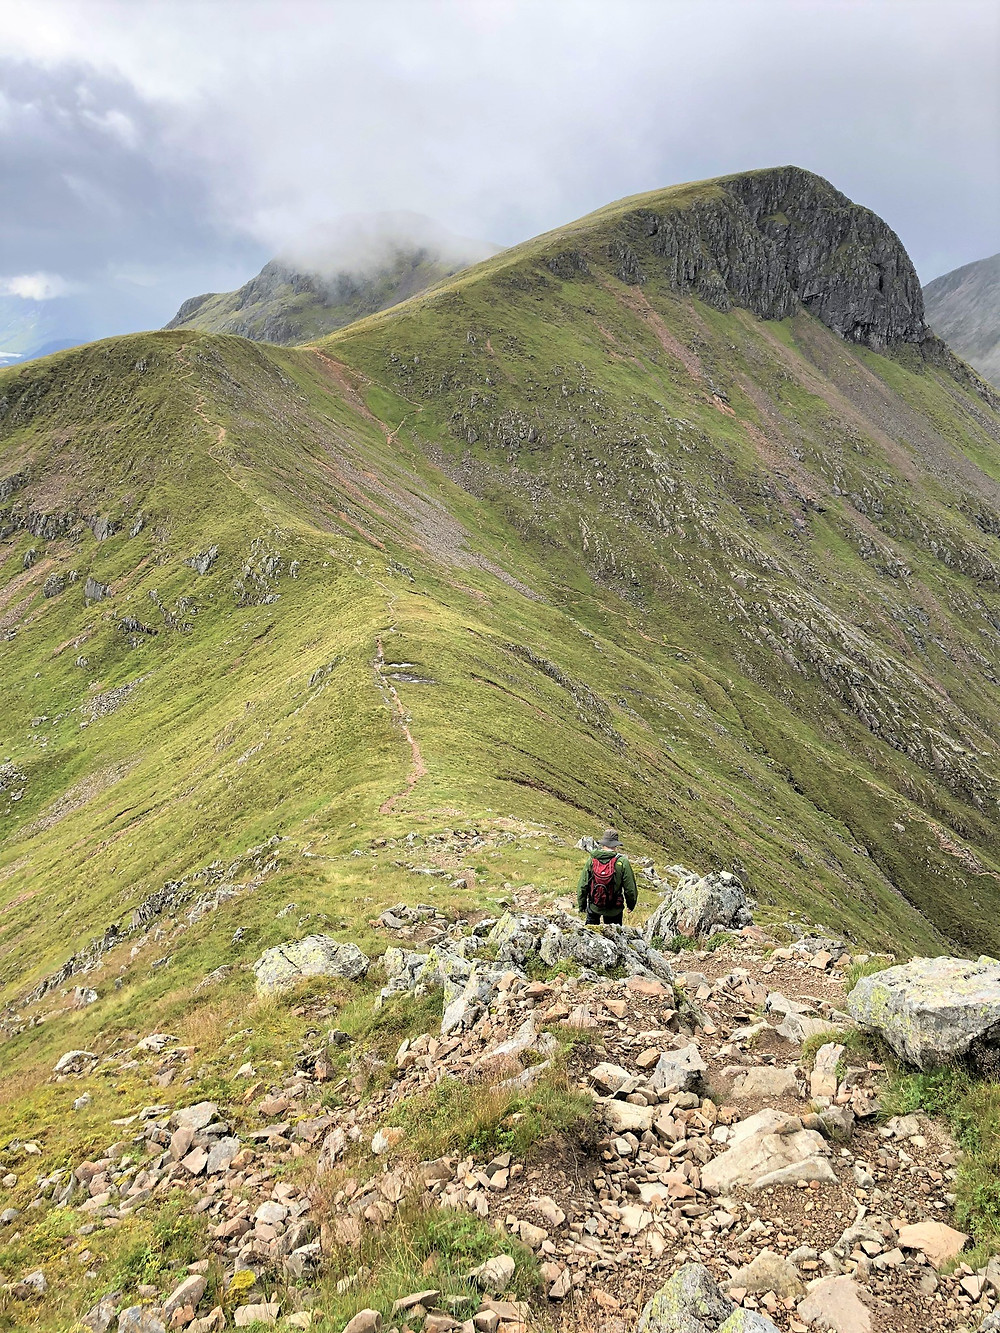 View of Stob Coire Altruim from the trail descending from the summit of Stob Na Doire